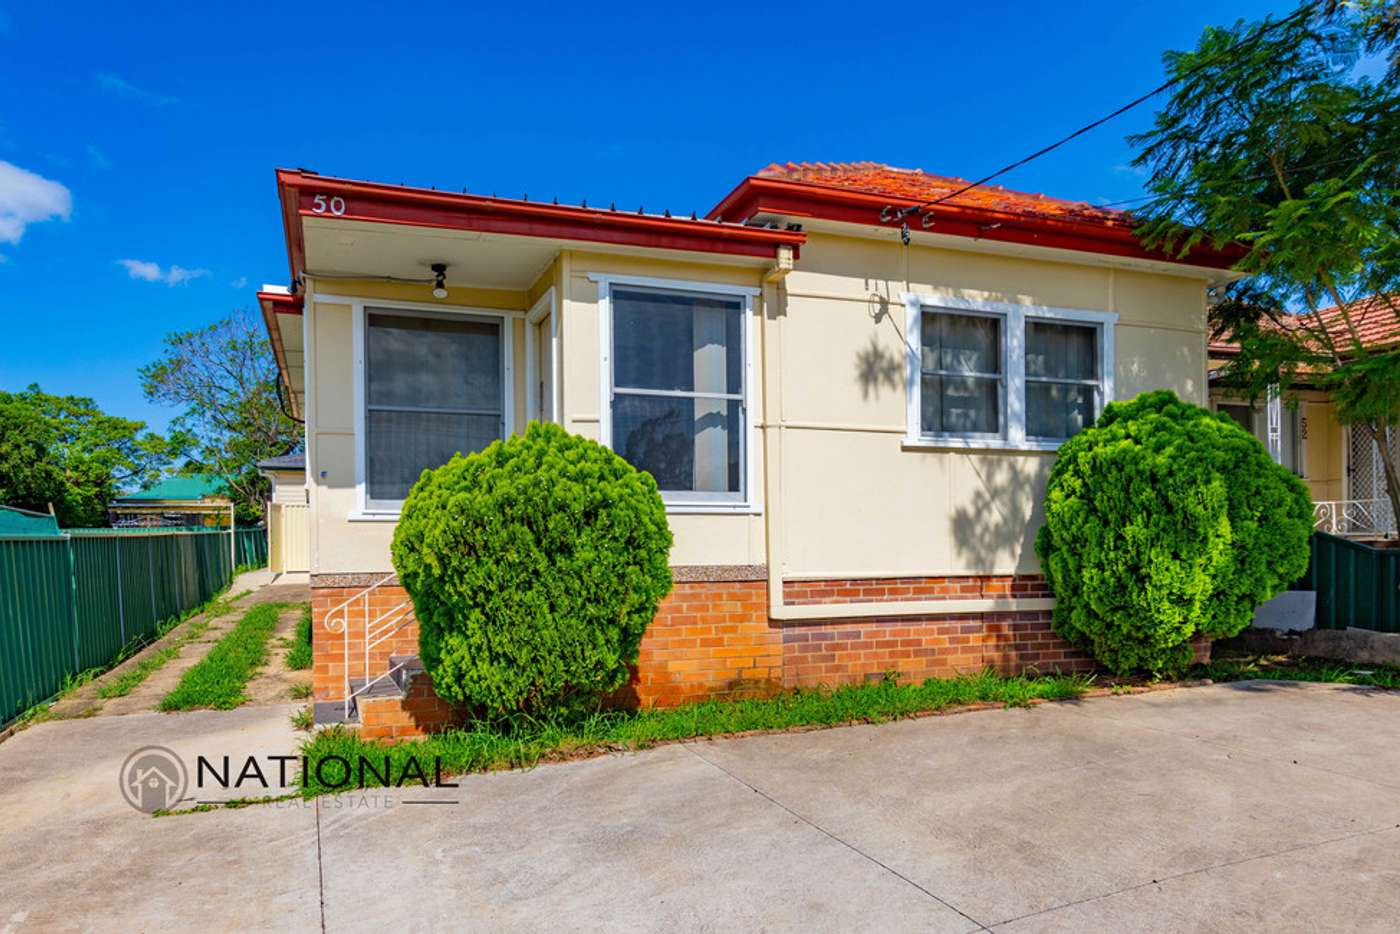 Main view of Homely house listing, 50 Station Street, Guildford NSW 2161